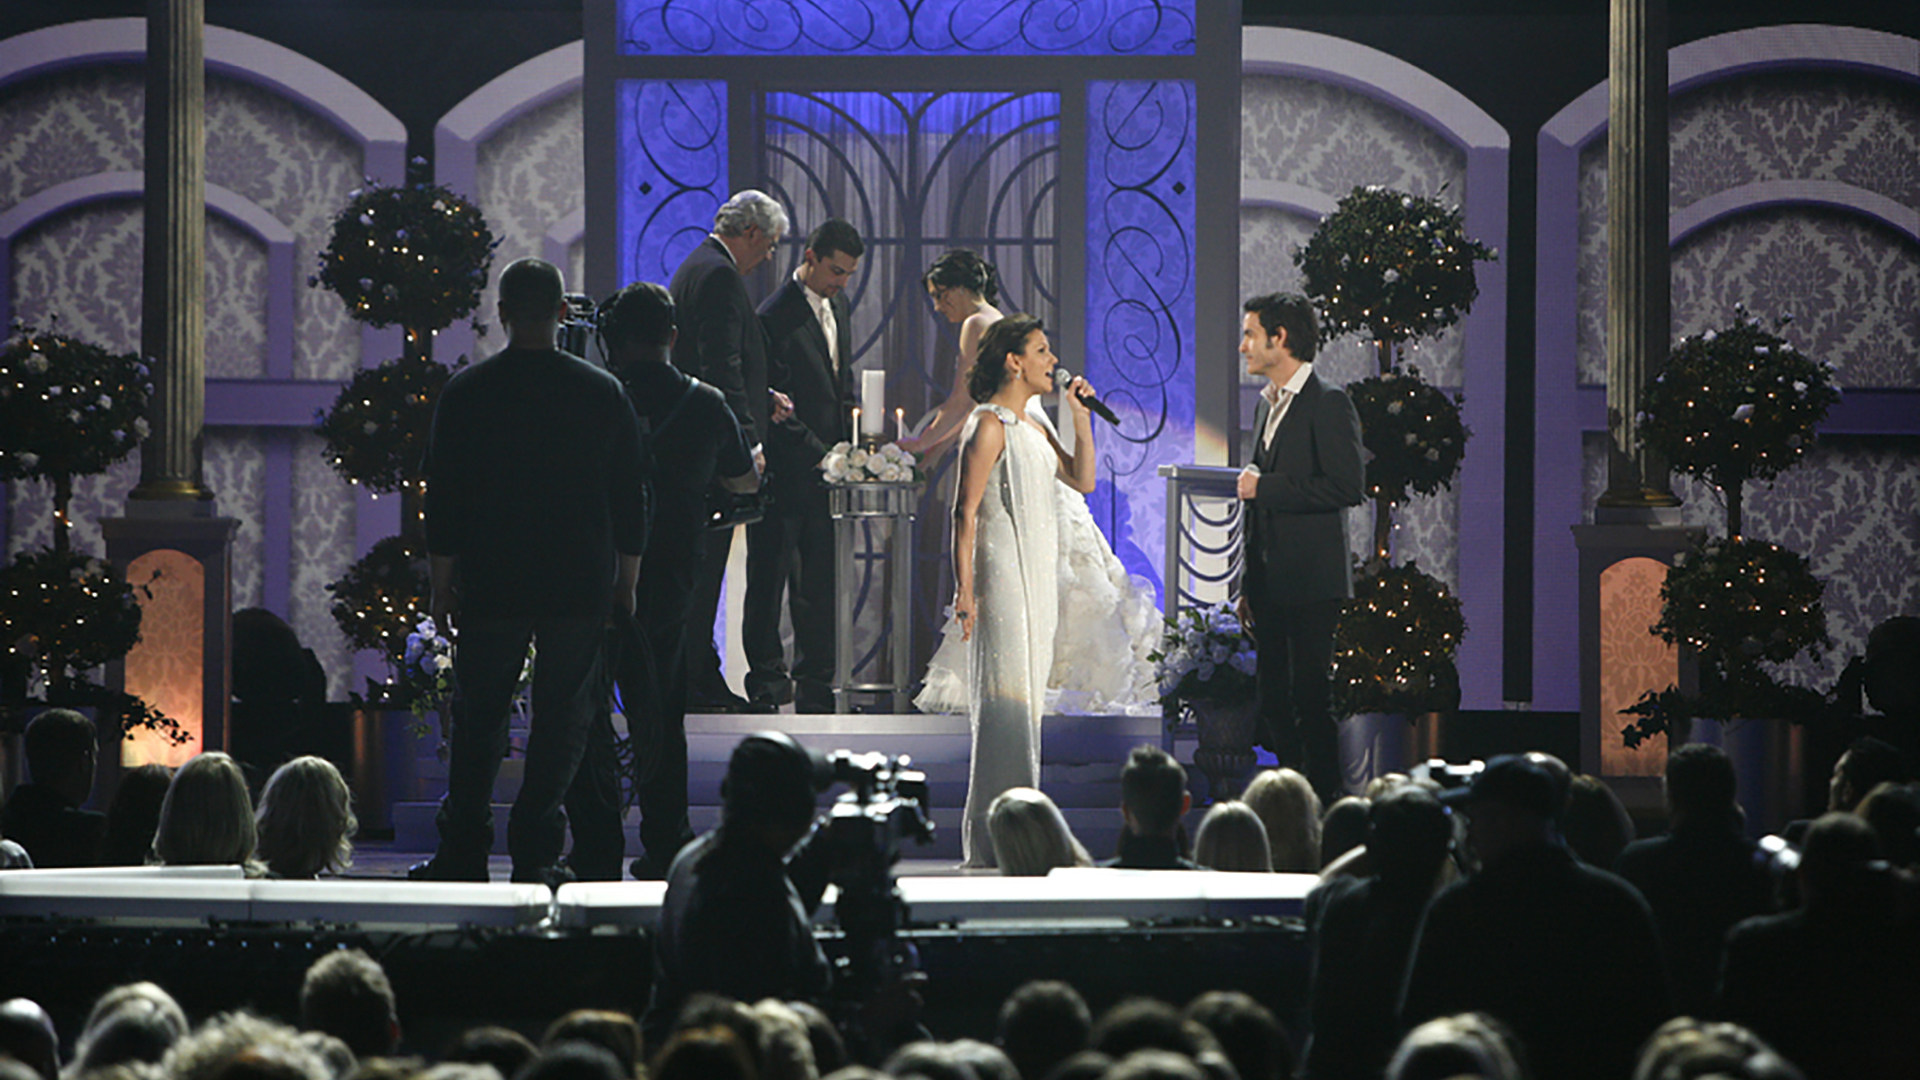 17. Martina McBride and Train singer Pat Monahan perform